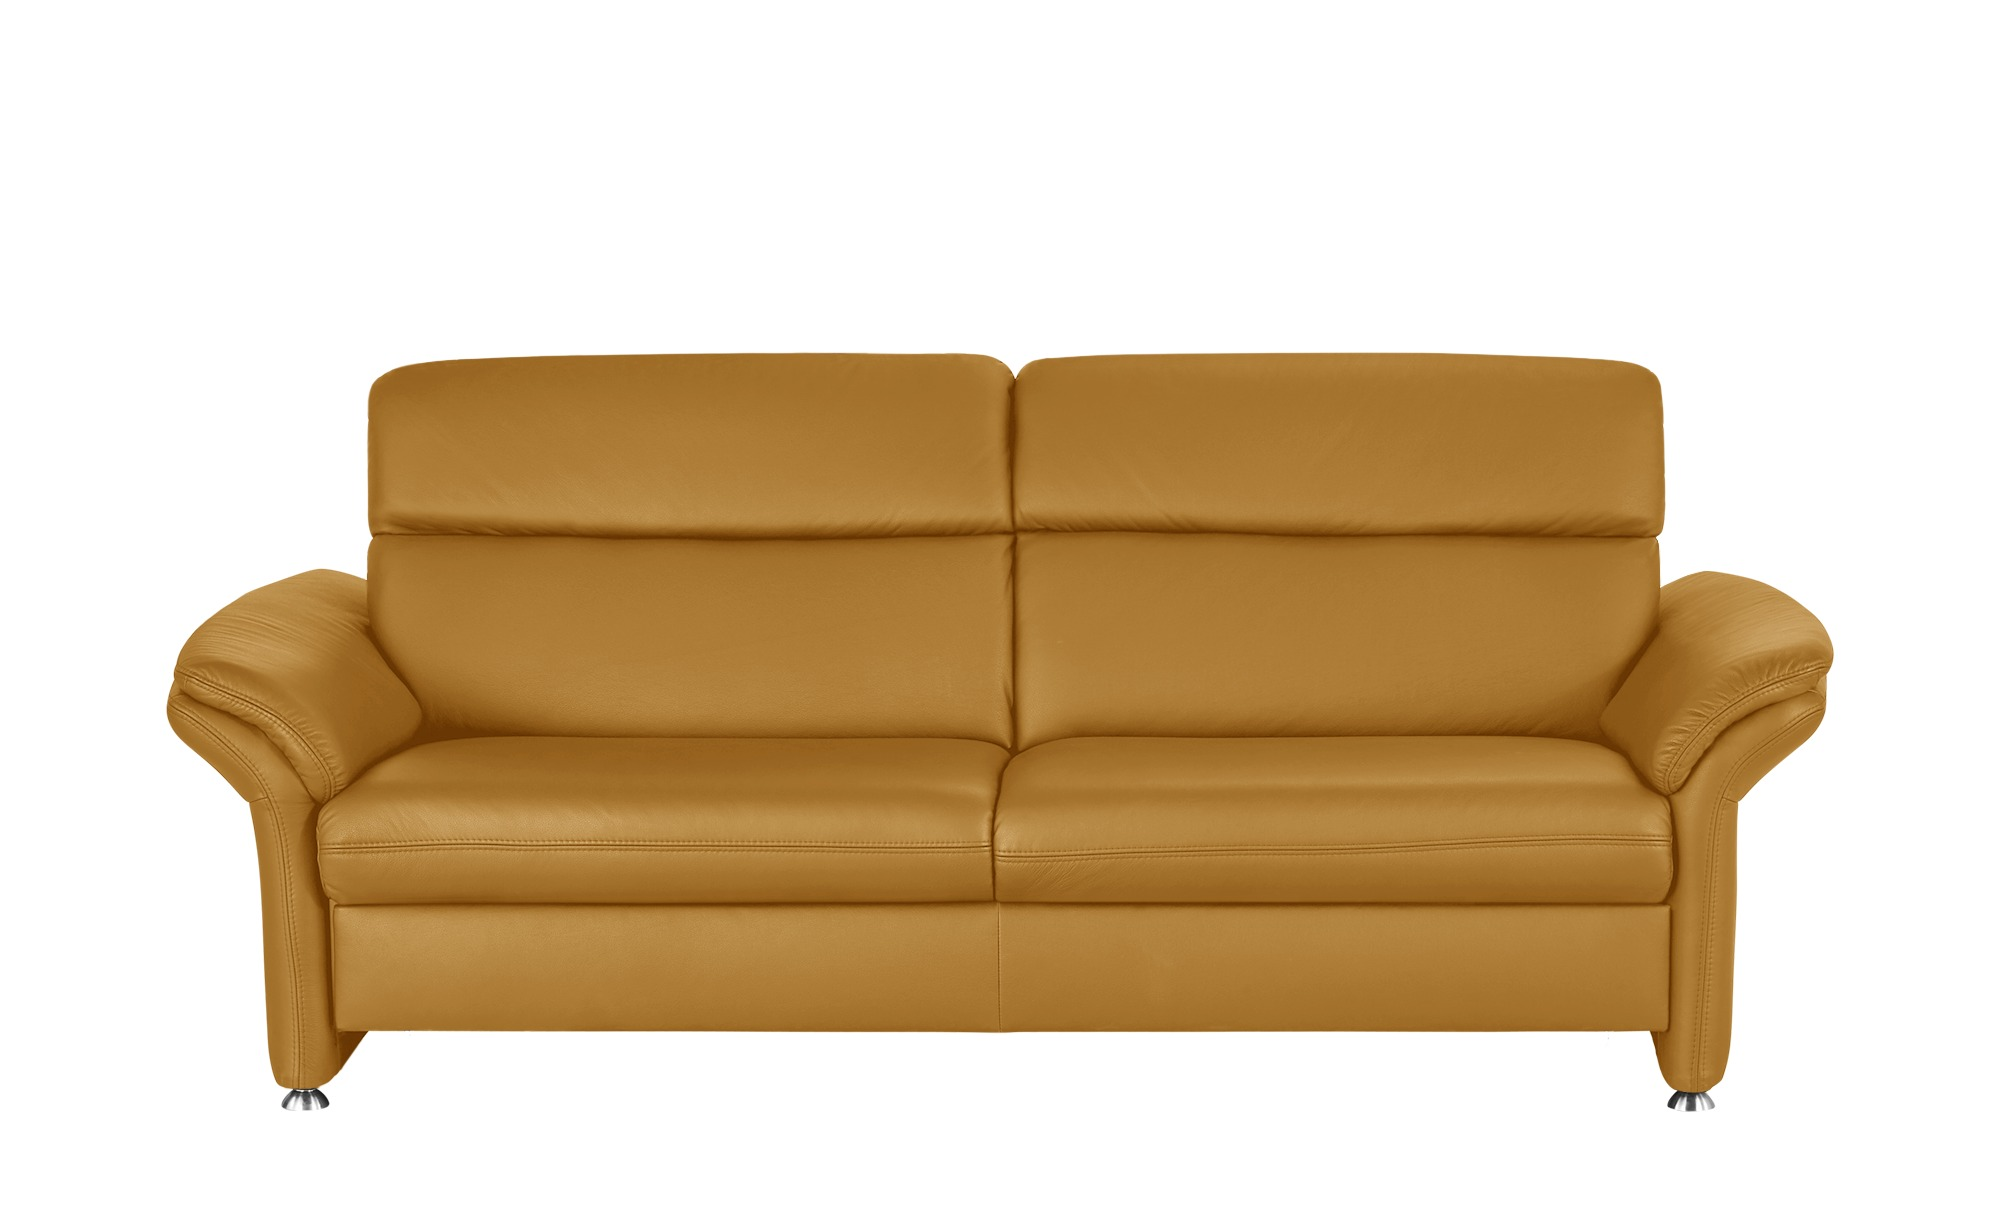 Ledersofa Gelb Couch Sessel Gelb